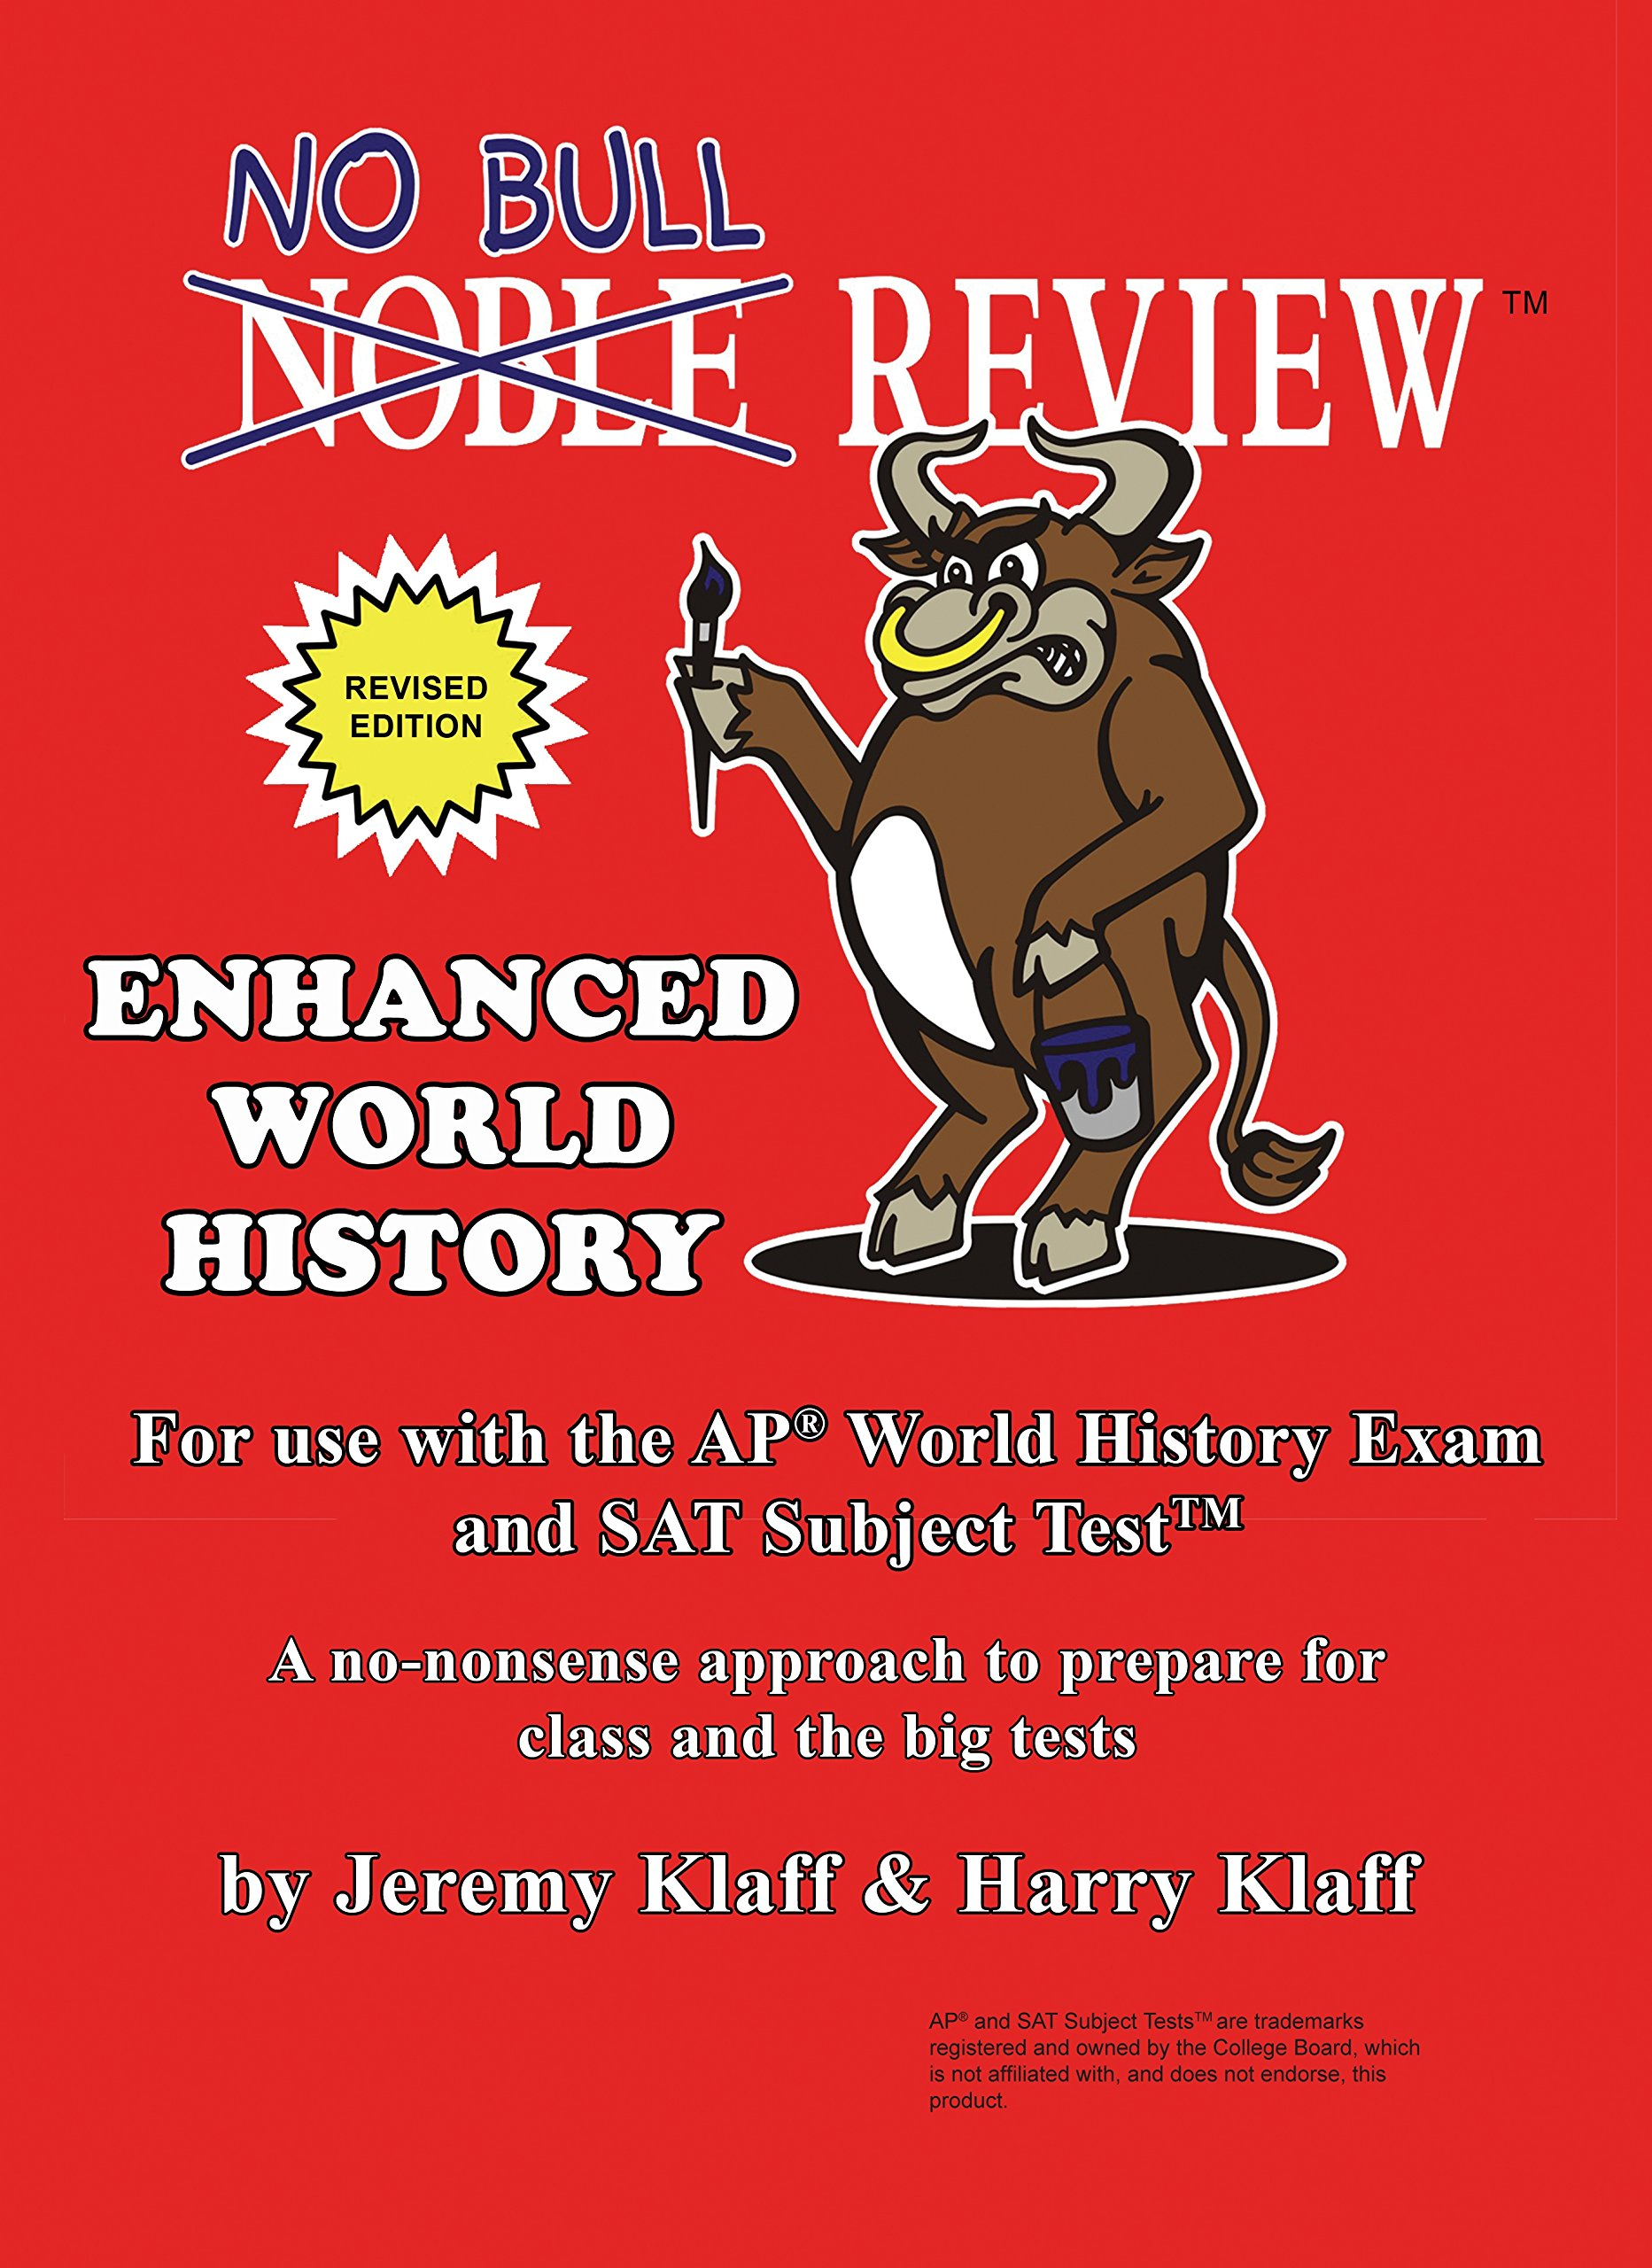 No Bull Review (2018 Edition) - For Use with the AP World History Exam and SAT Subject Test